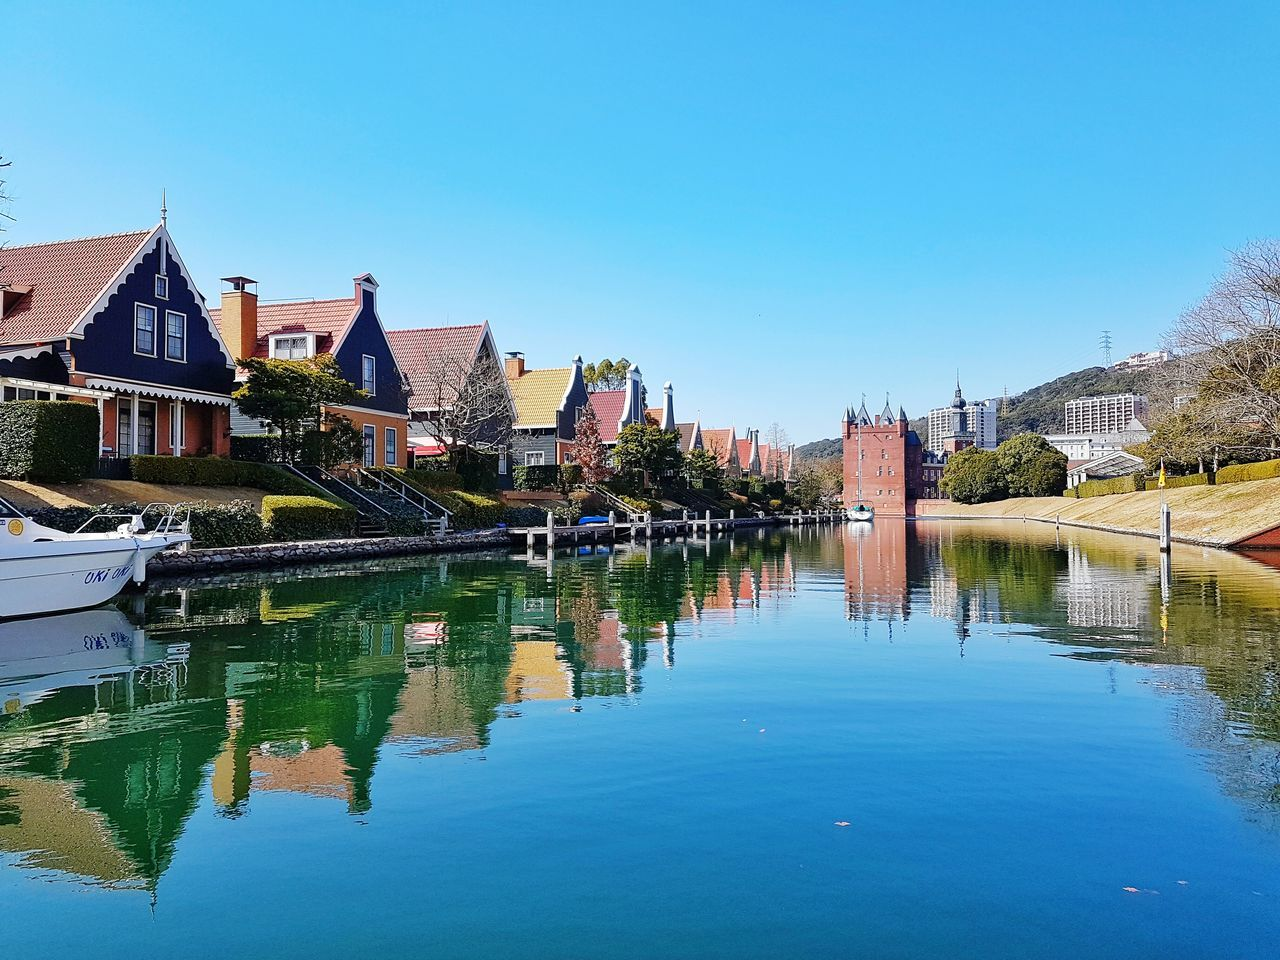 Reflection Water Sky Outdoors Travel Destinations Tranquility Architecture Tree Reflection Lake Nature No People Day Standing Water Building Exterior Lake Vacations Urban Skyline Beauty In Nature Huis Ten Bosch Fukuoka,Japan Japan Nagasaki Amsterdam Village Colorful